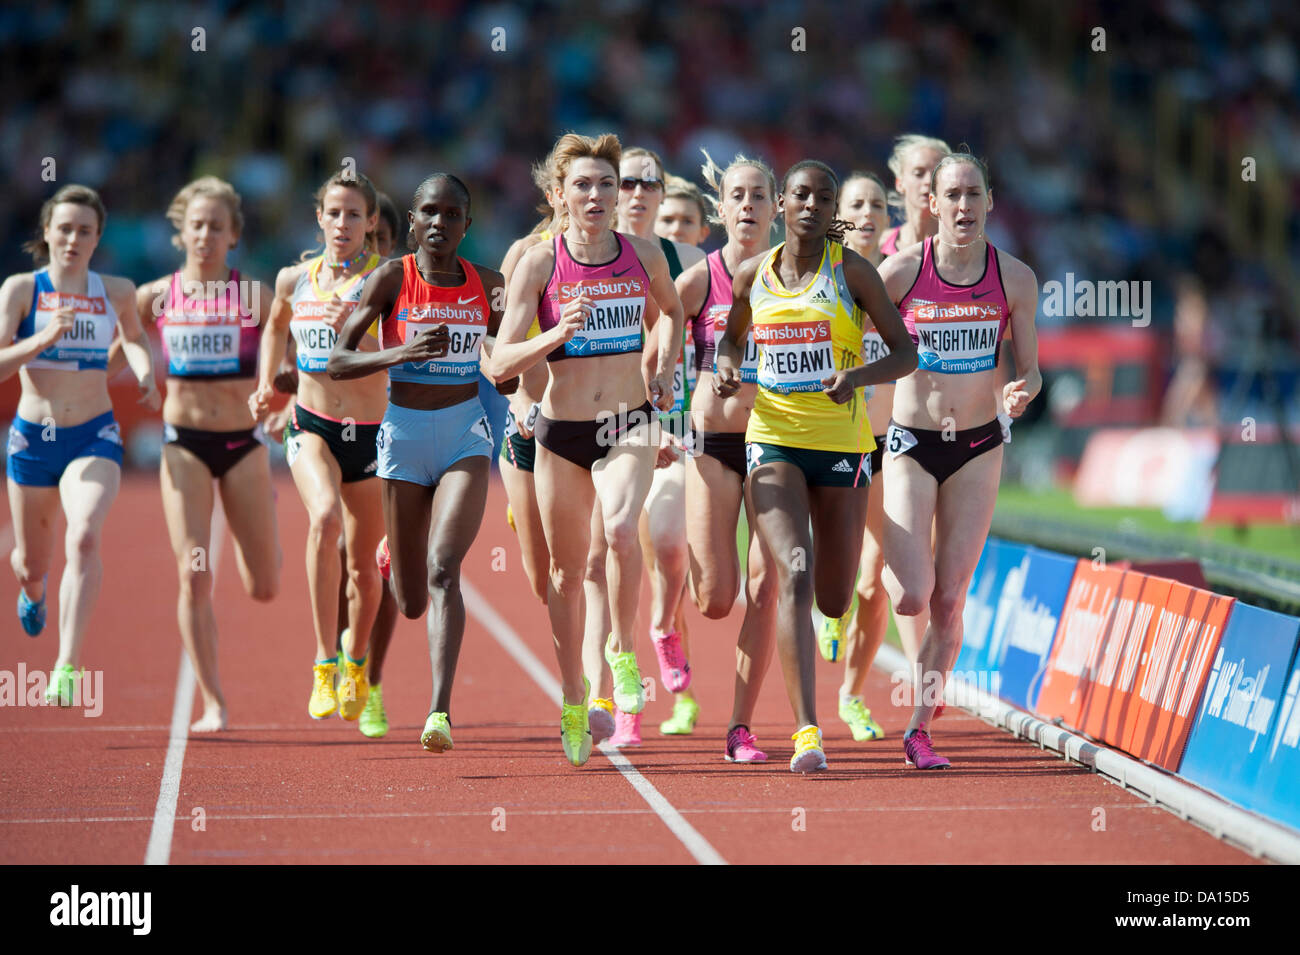 Birmingham, UK. 30th June 2013. Abeba Aregawi of Sweden finishes 1st in the women's 1500m event at the 2013 - Stock Image